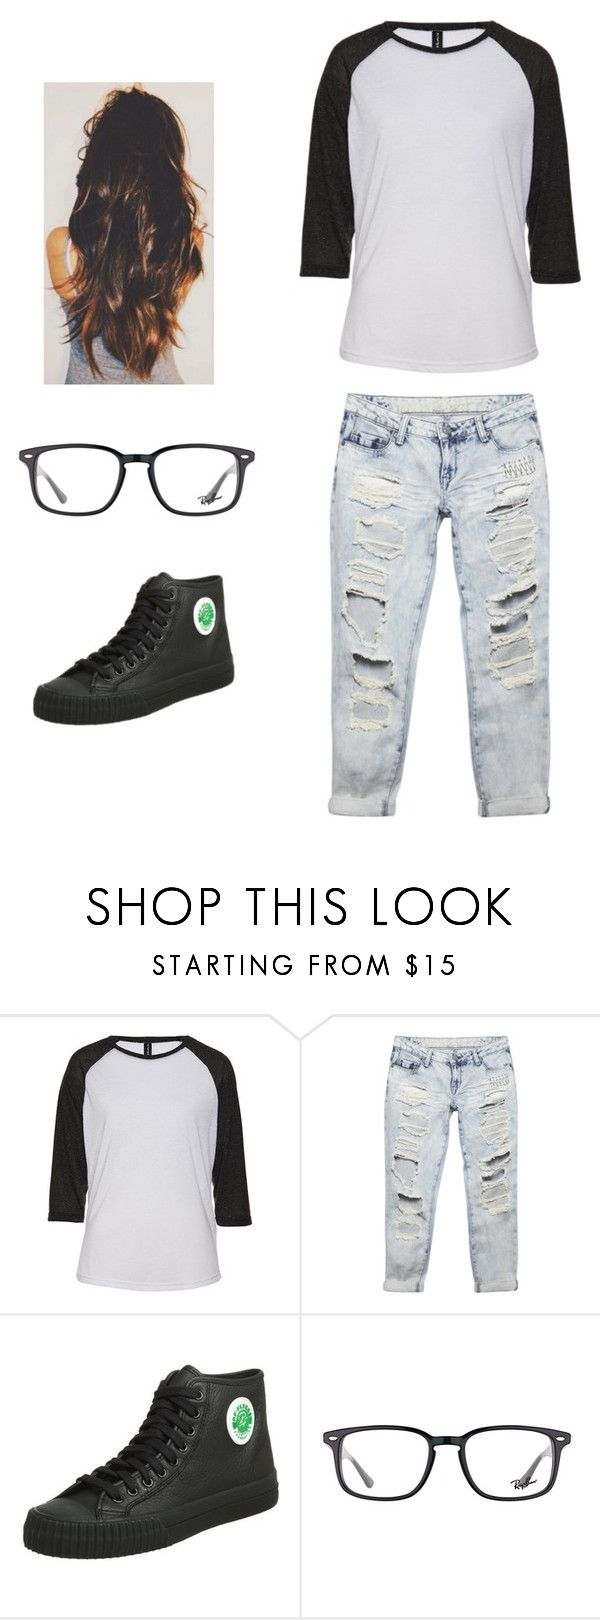 """""""Sandlot"""" by smollllbeannnn ❤ liked on Polyvore featuring Wet Seal, PF Flyers and Ray-Ban"""